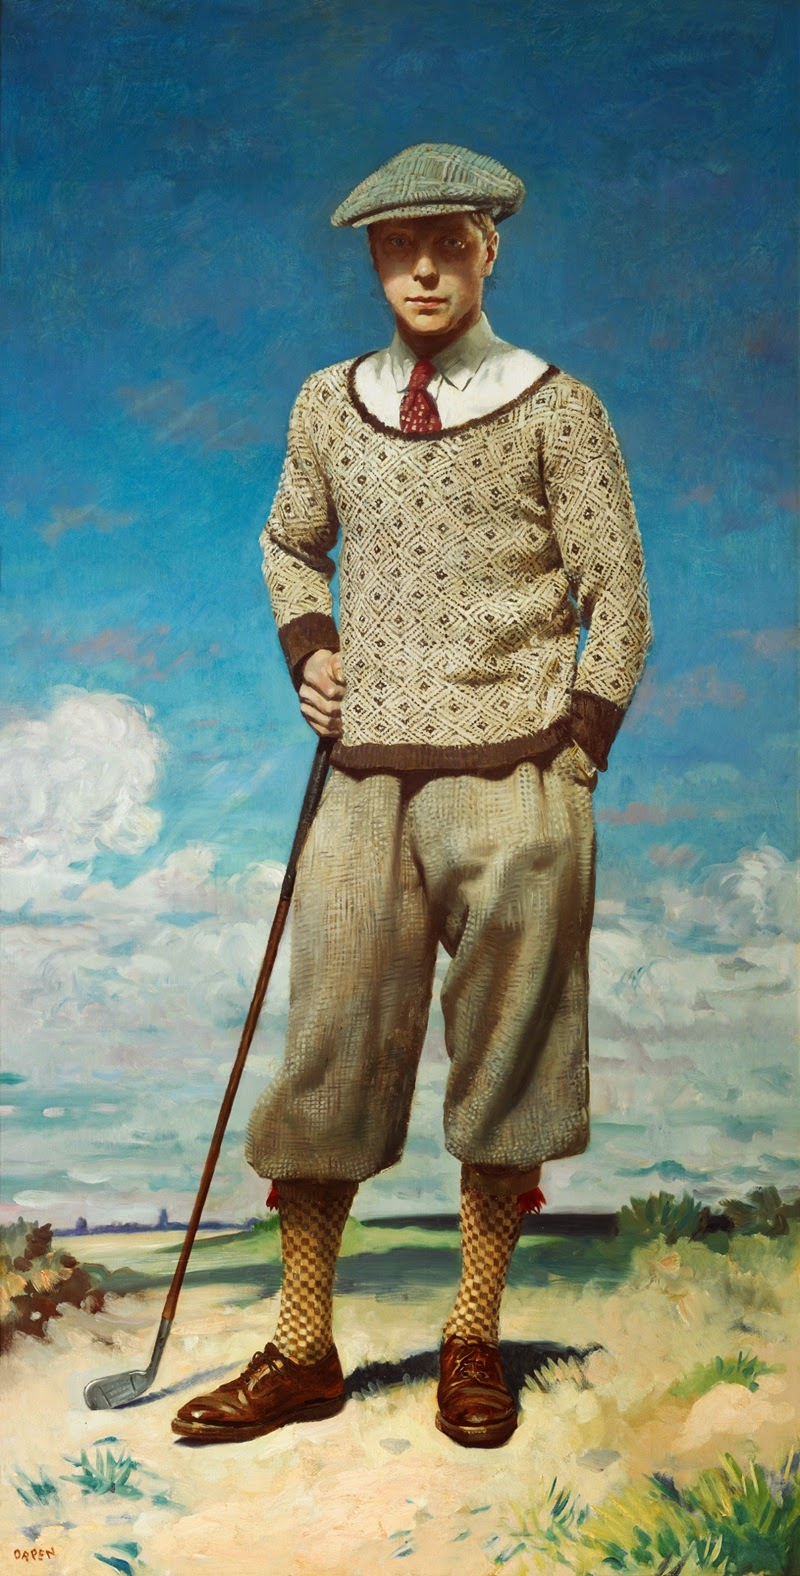 The Prince –  This portrait of His Royal Highness the Prince of Wales was commissioned in 1927 to commemorate the rise of a royal to the position of captain of the R&A. The story is told that the prince insisted on being portrayed in standard golfer's garb rather than his more typical formal attire. Dashing!